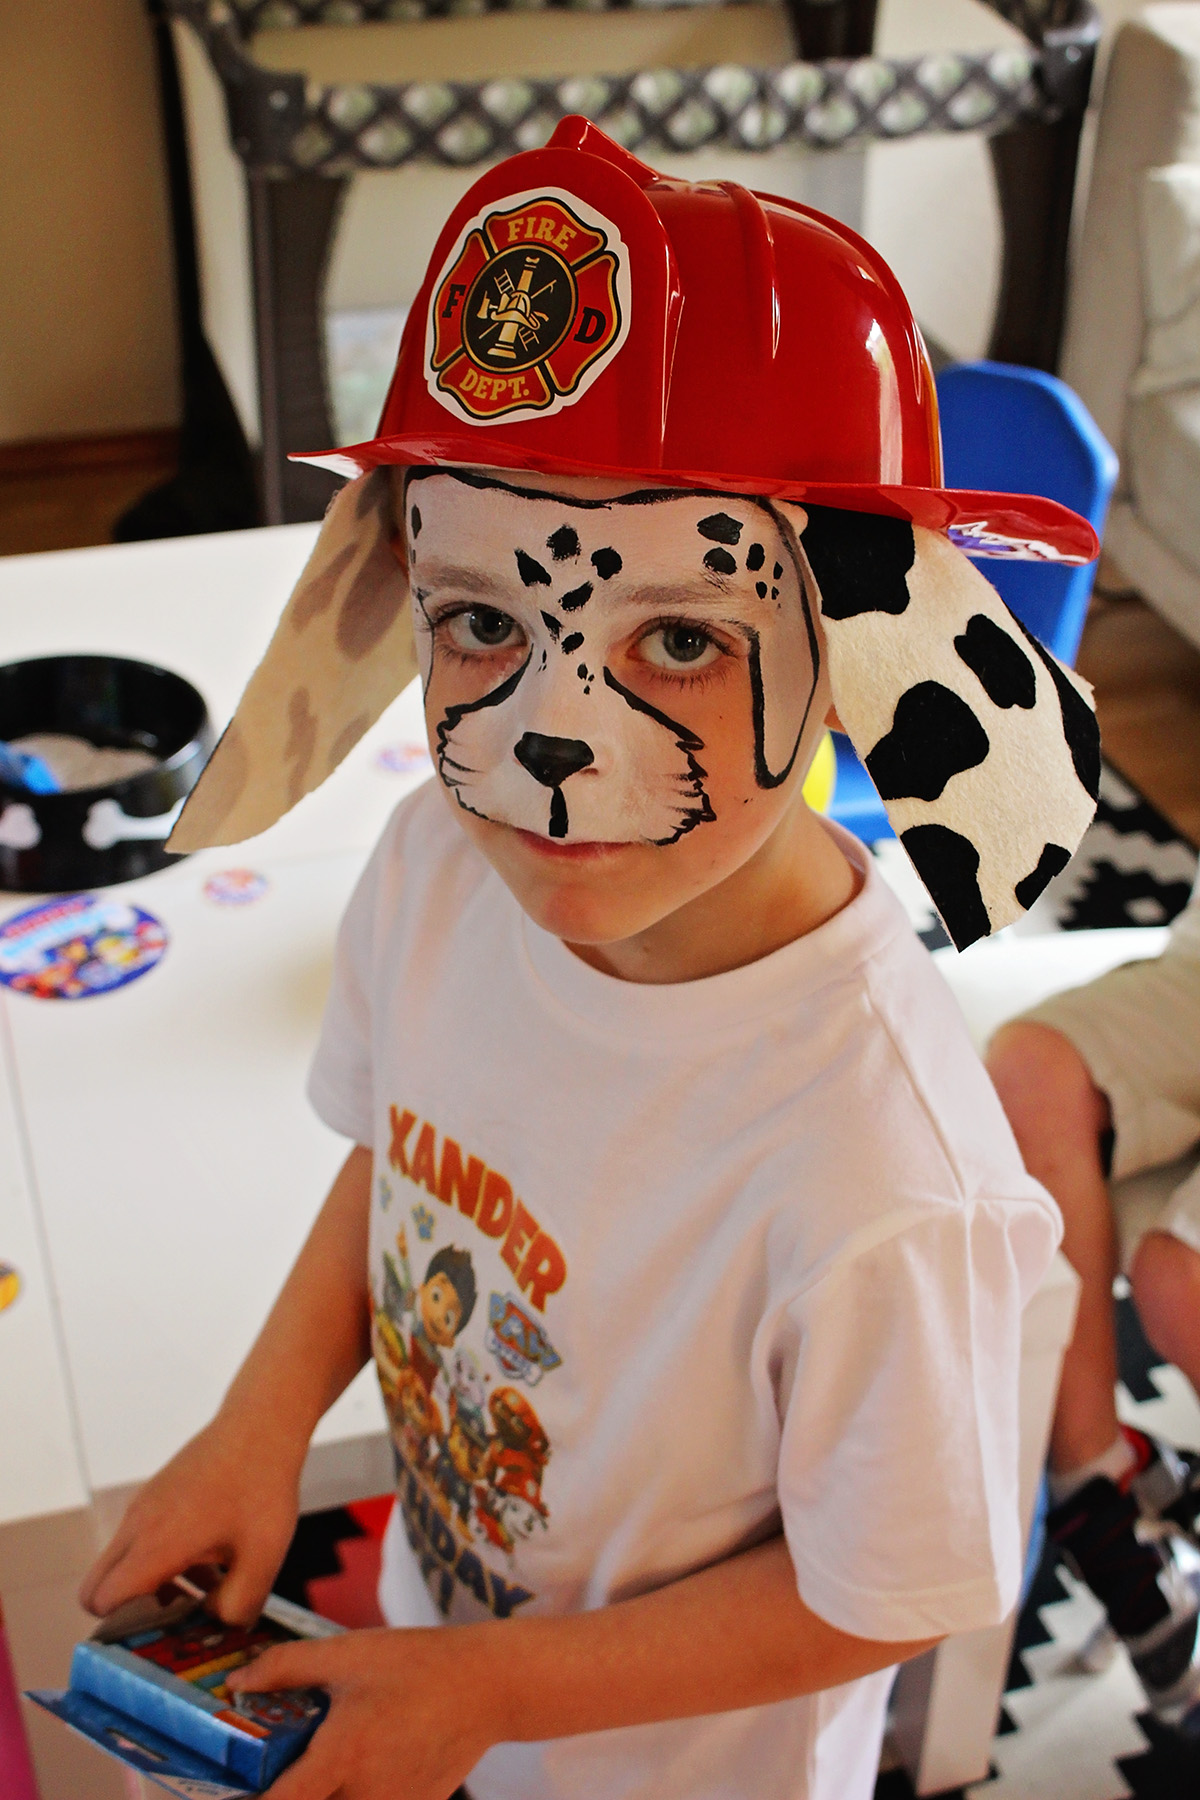 Paw Patrol Party with Face Painter